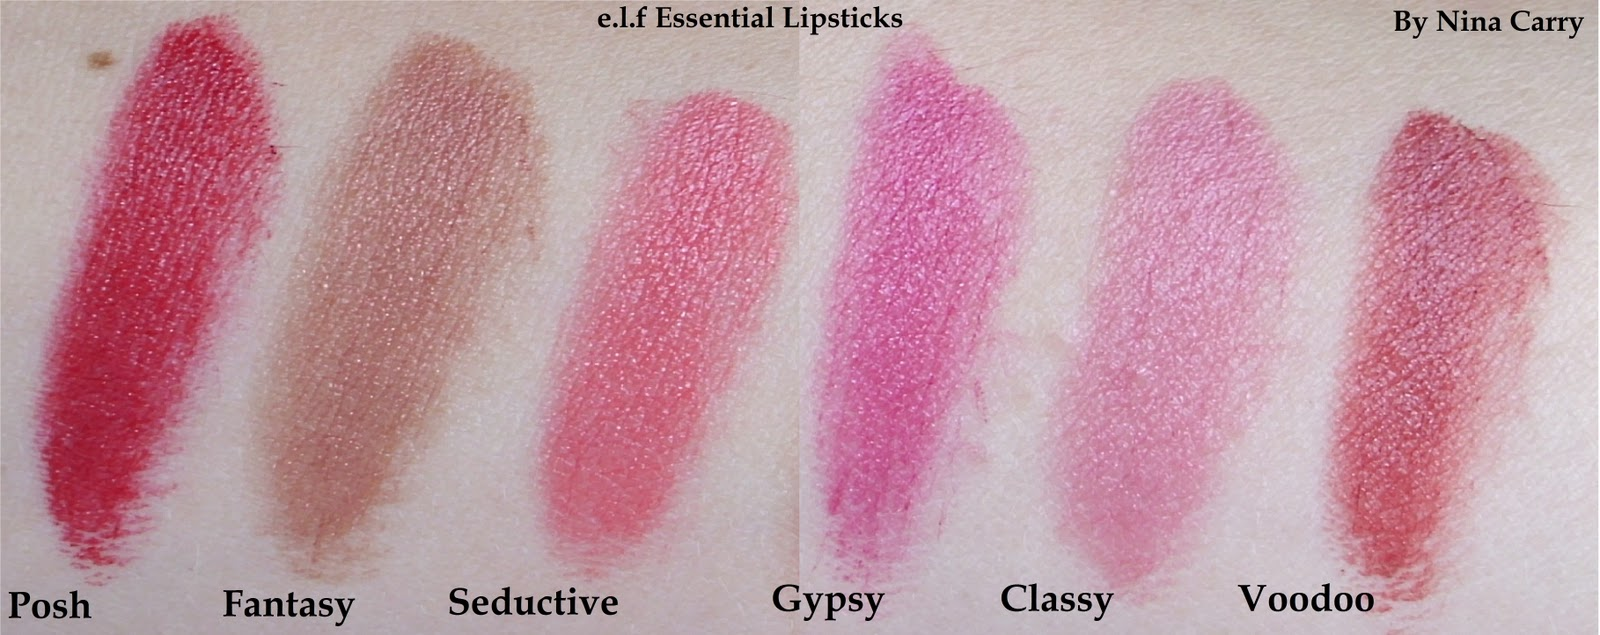 Nina's Bargain Beauty*: e.l.f Essential Lipsticks Review